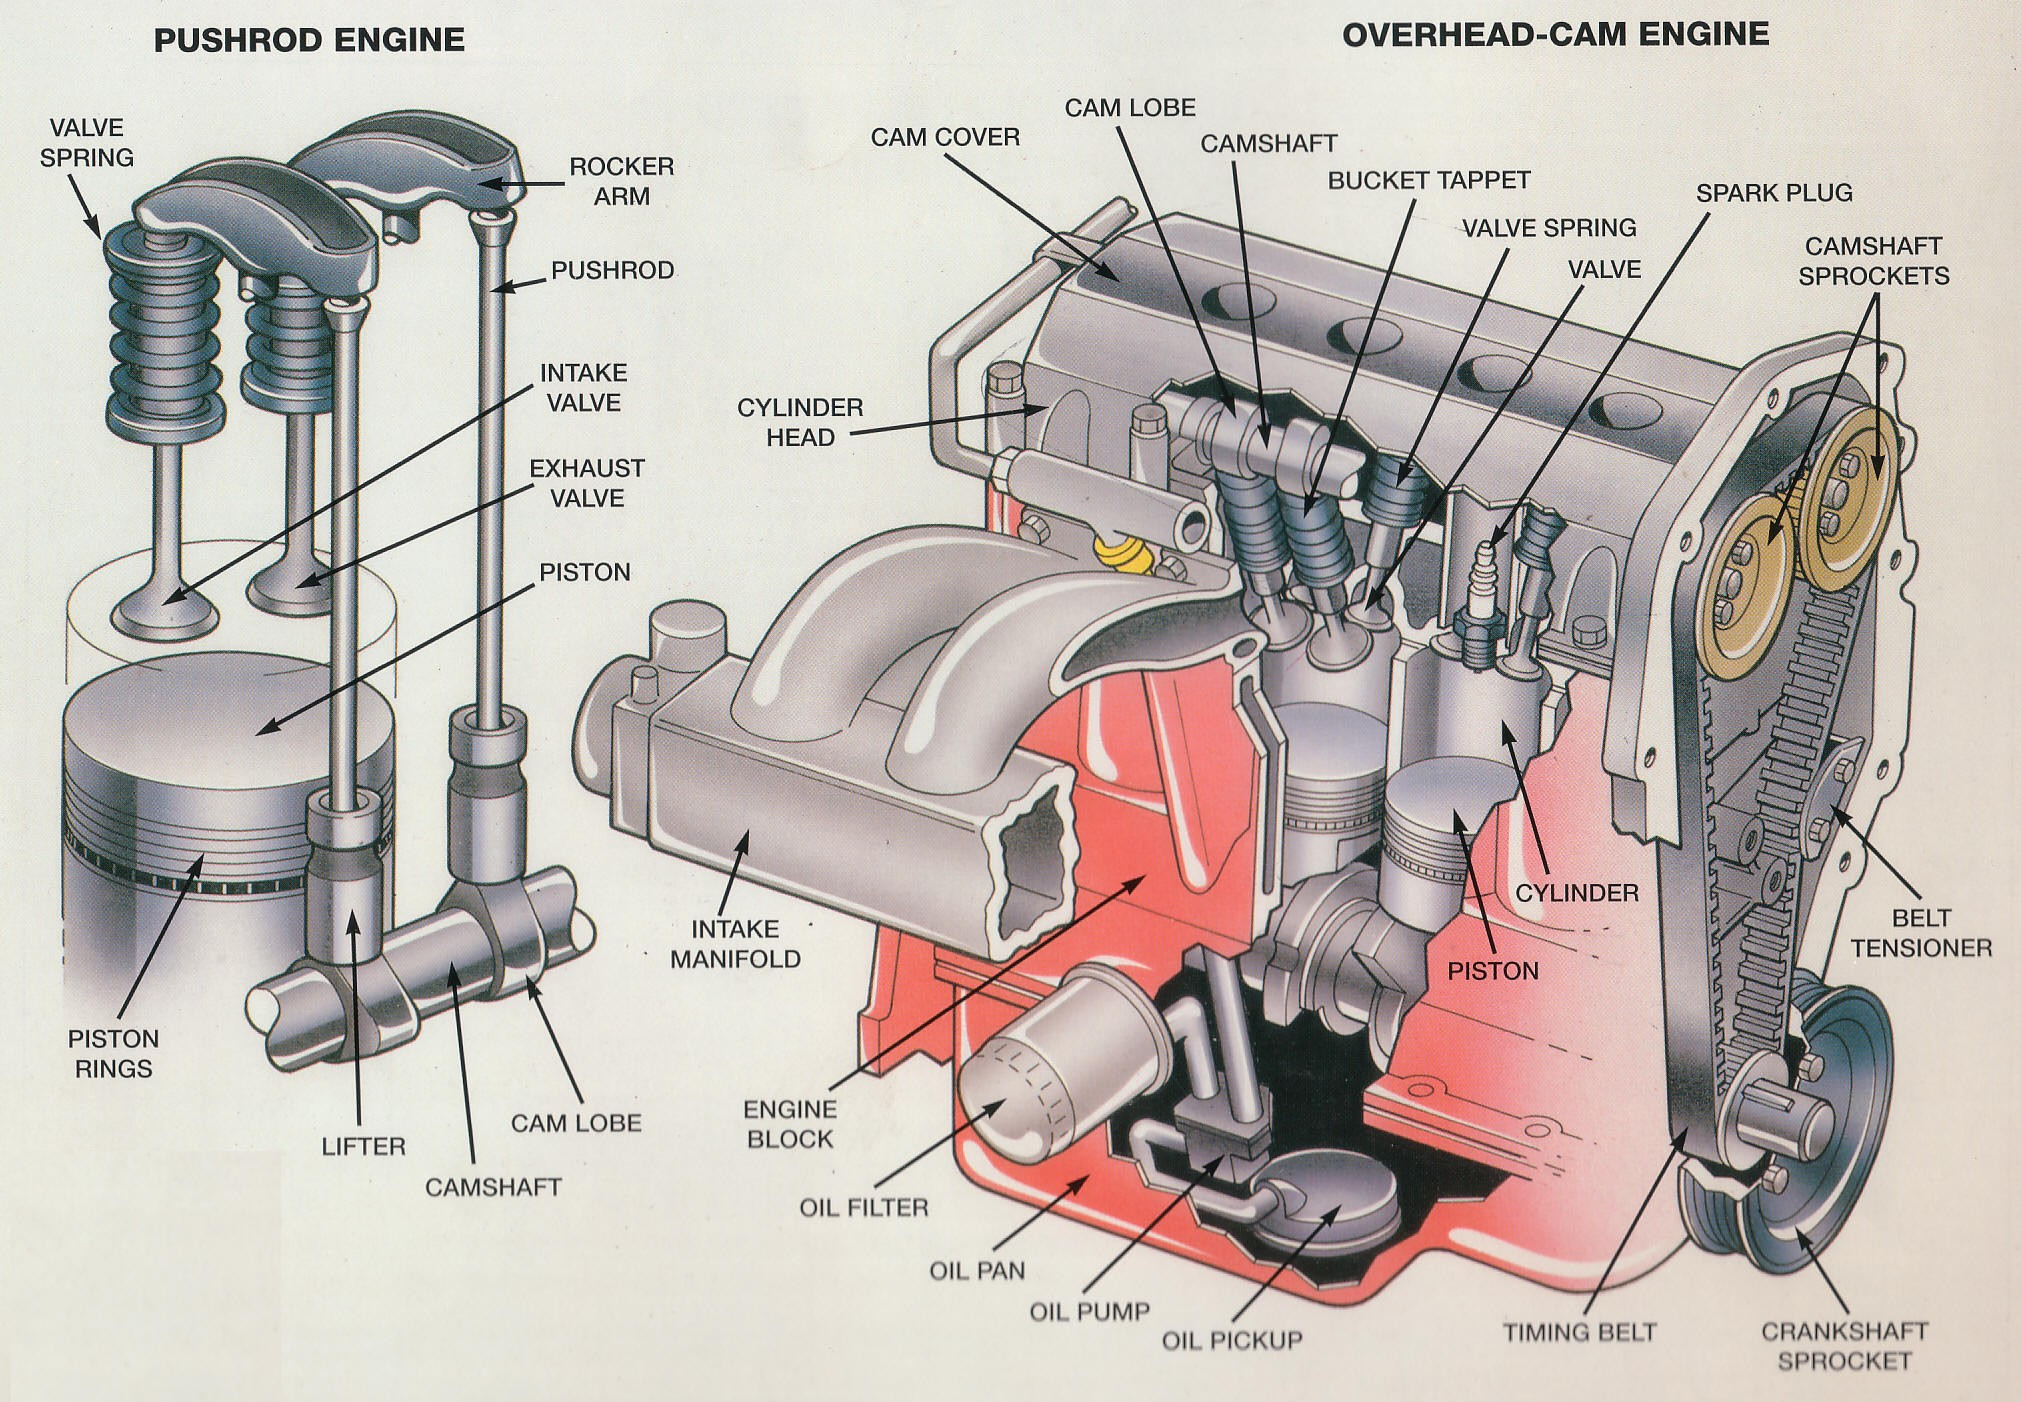 diagram of combustion engine my wiring diagram rh detoxicrecenze com gasoline engine diagram combustion engine diagram